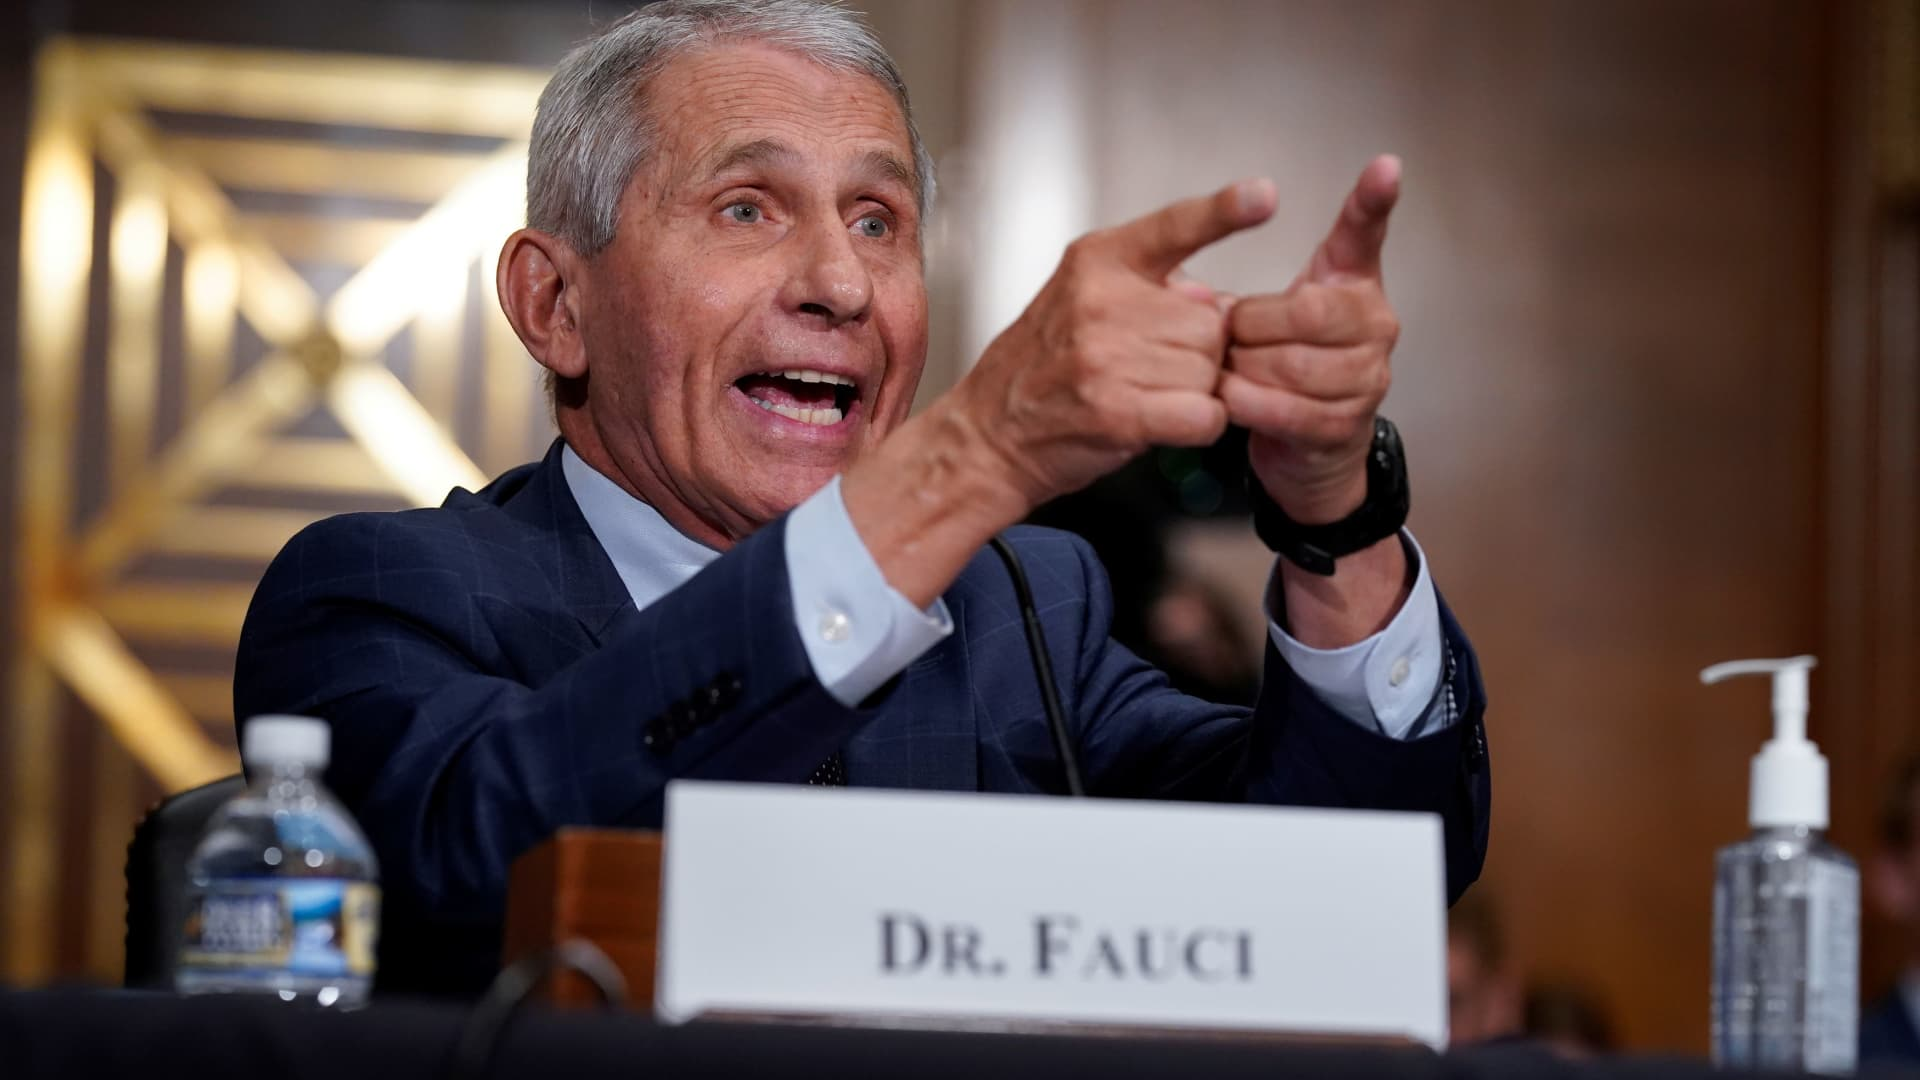 Top infectious disease expert Dr. Anthony Fauci responds to accusations by Sen. Rand Paul (R-KY) as he testifies before the Senate Health, Education, Labor, and Pensions Committee on Capitol hill in Washington, D.C., July 20, 2021.